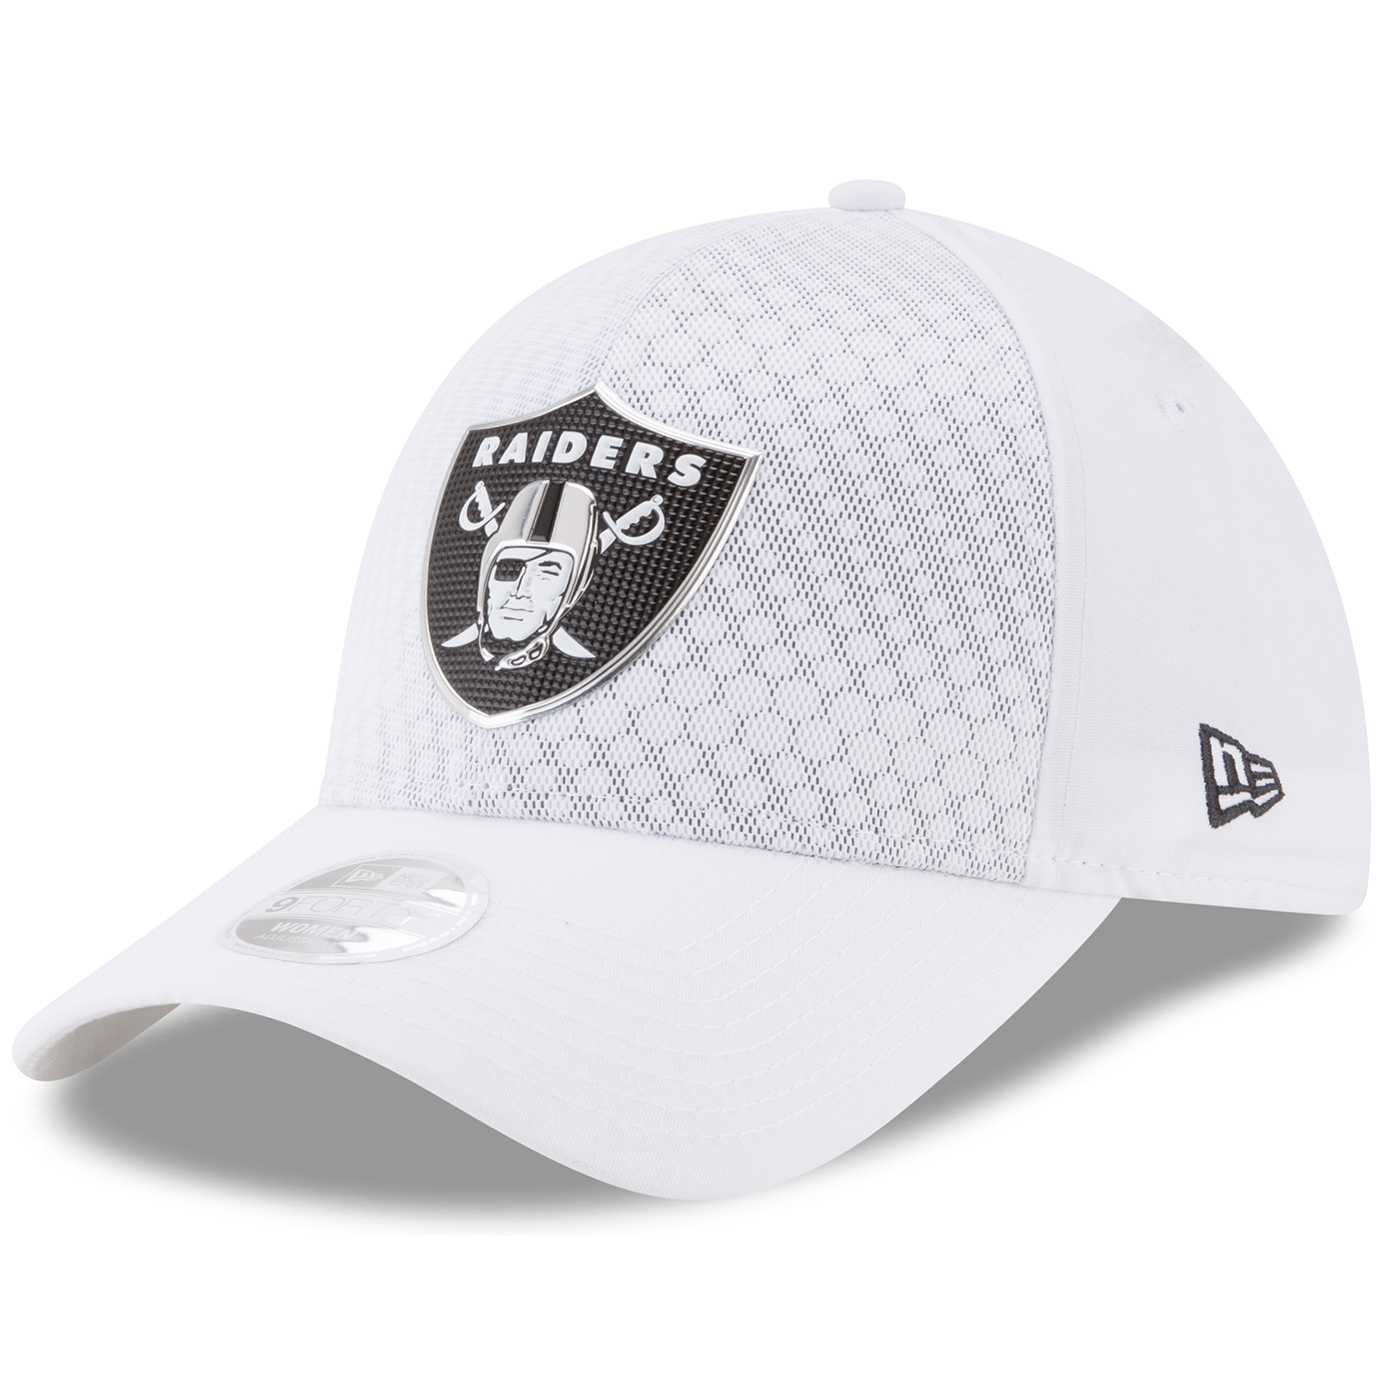 separation shoes 41701 a9481 Raiders New Era Official 2017 Sideline Color Rush Women s Cap